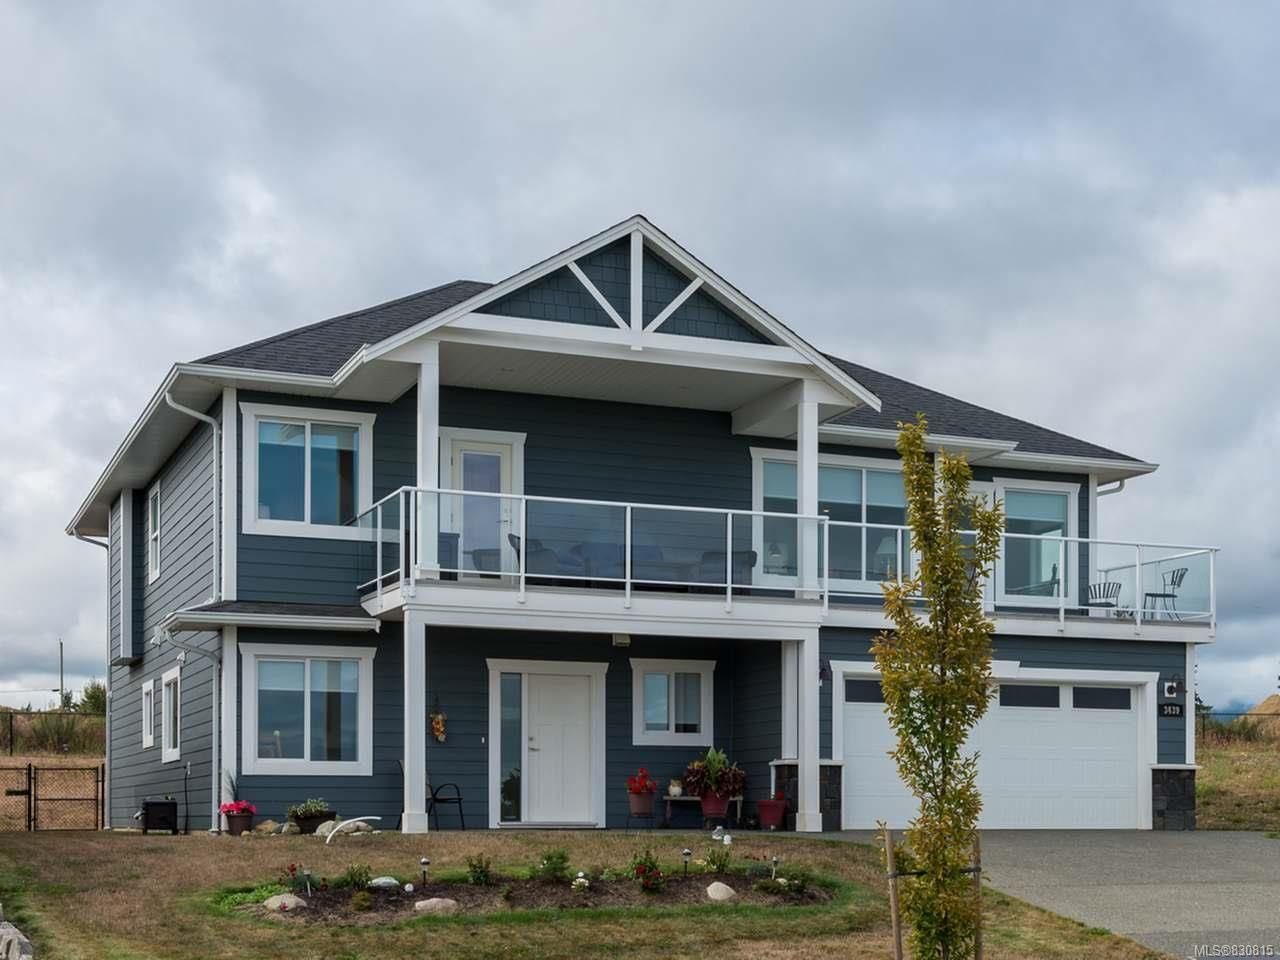 Main Photo: 3439 Eagleview Cres in COURTENAY: CV Courtenay City House for sale (Comox Valley)  : MLS®# 830815